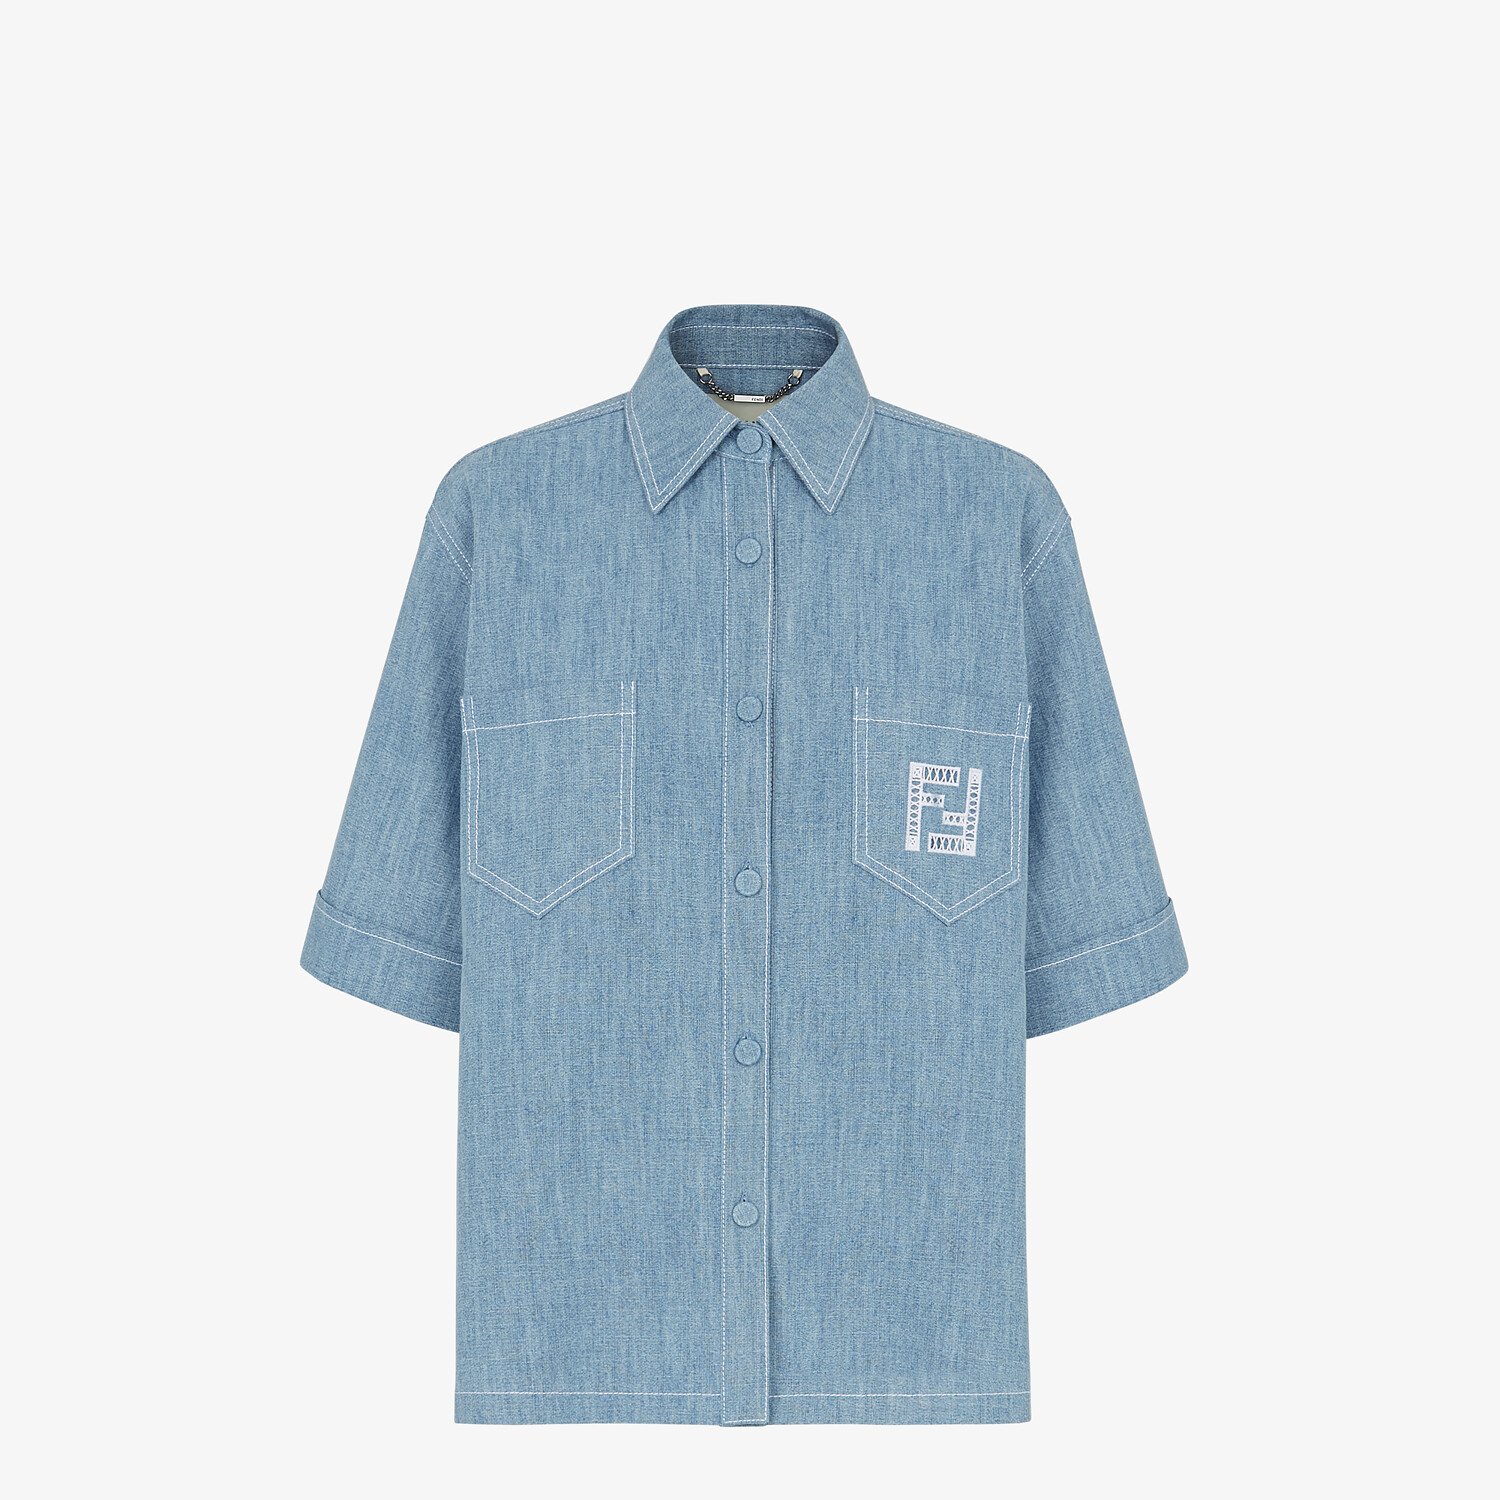 FENDI SHIRT - Light blue chambray shirt - view 1 detail